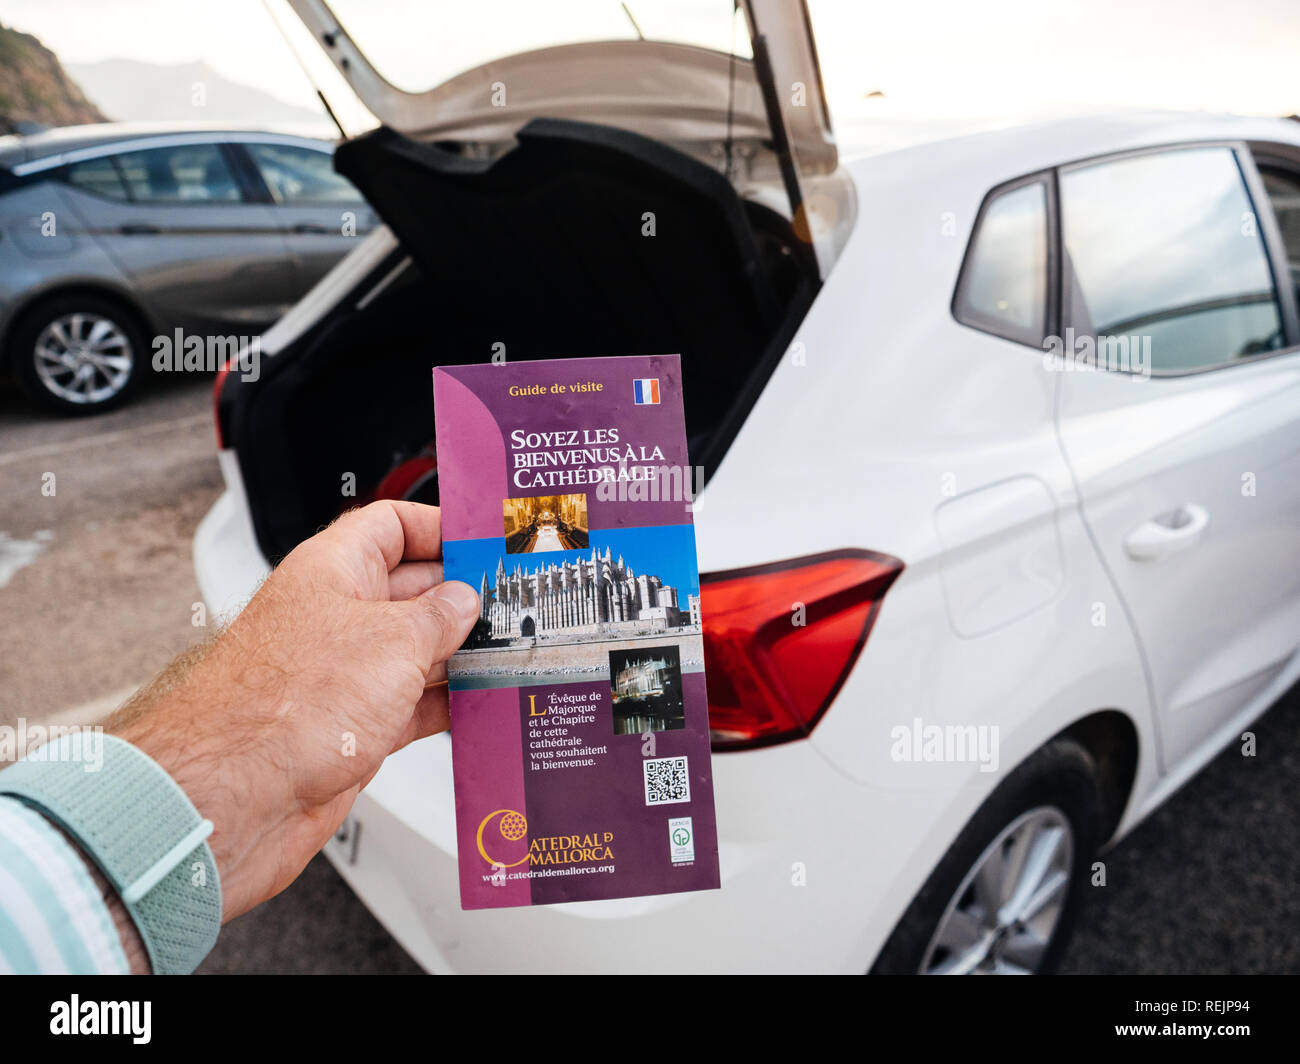 Port de Valldemosa, Palma de Malloca, Spain - May 10, 2018: Man holding point of view the touristic guide of the Santa Maria of Palma Cathedral in the parking near the open car trunk - Stock Image